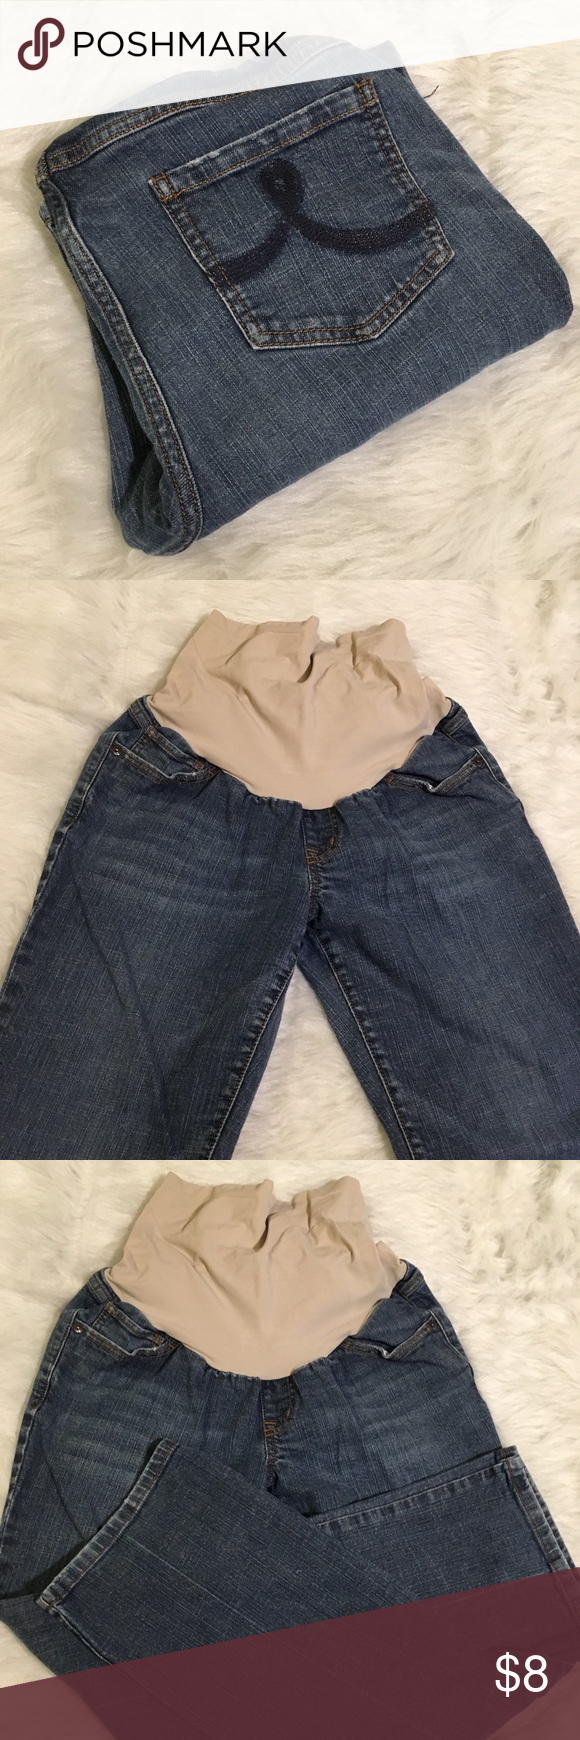 655032e0b6682 ... Maternity Denims Great go to jeans, with stretchy tan colored baby  band. Perfect for second and third trimesters. In very good pre-loved  condition.